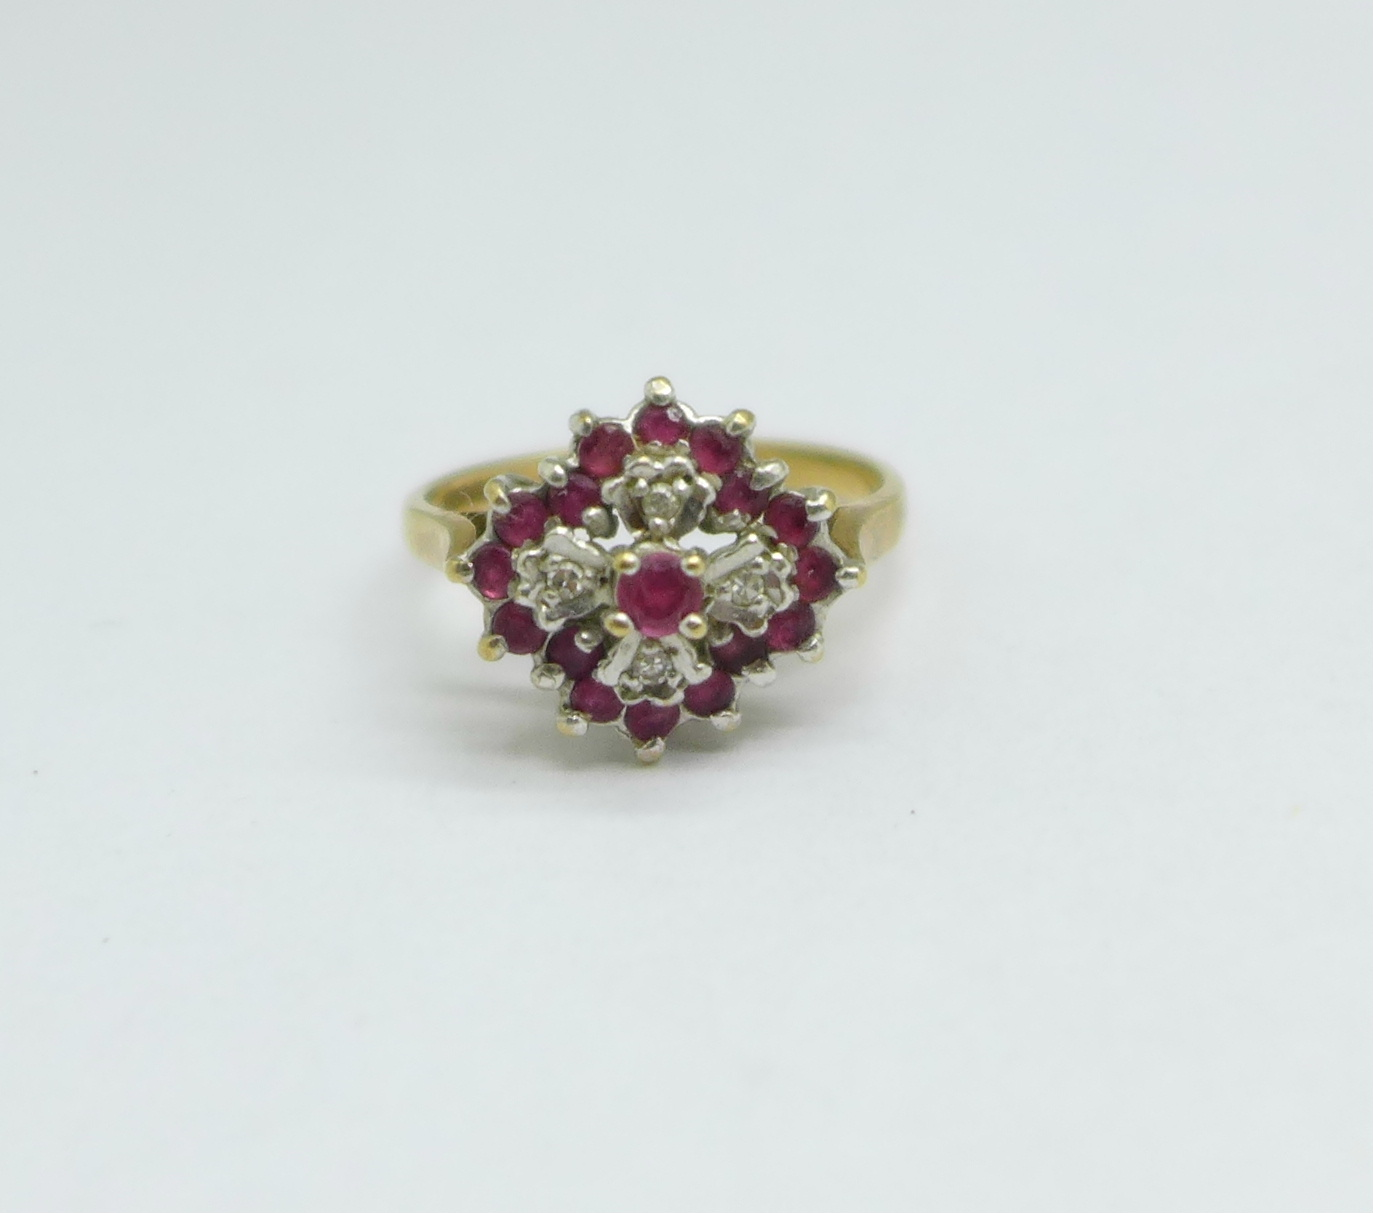 A 9ct gold cluster ring, 3.1g, O